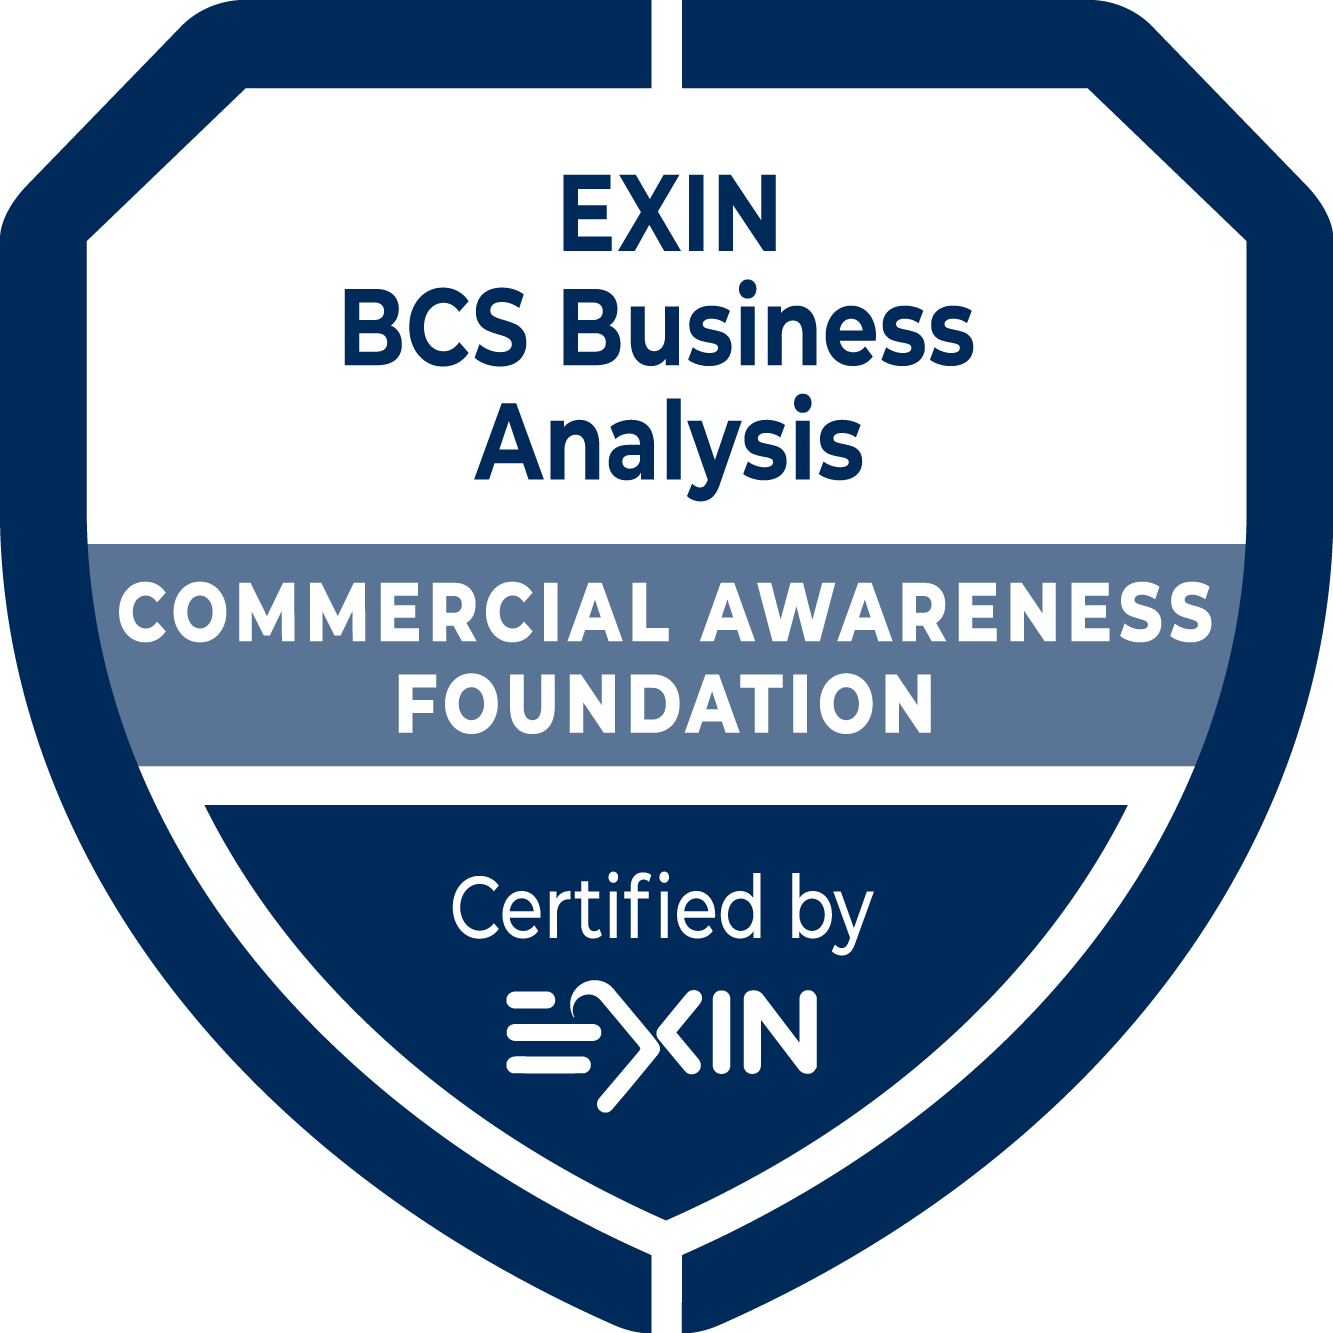 EXIN BCS Foundation Certificate in Commercial Awareness